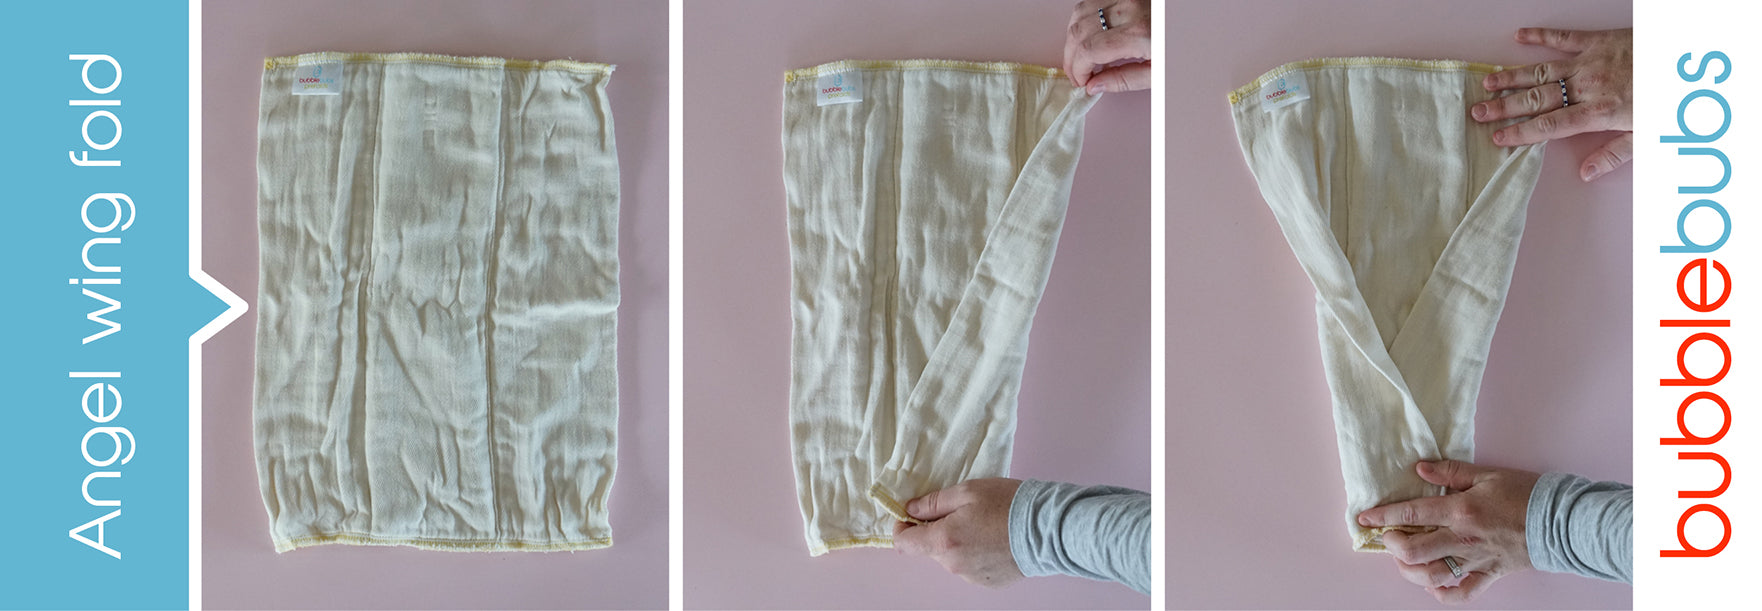 Steps to fold a prefold cloth nappy into an angel wing fold.